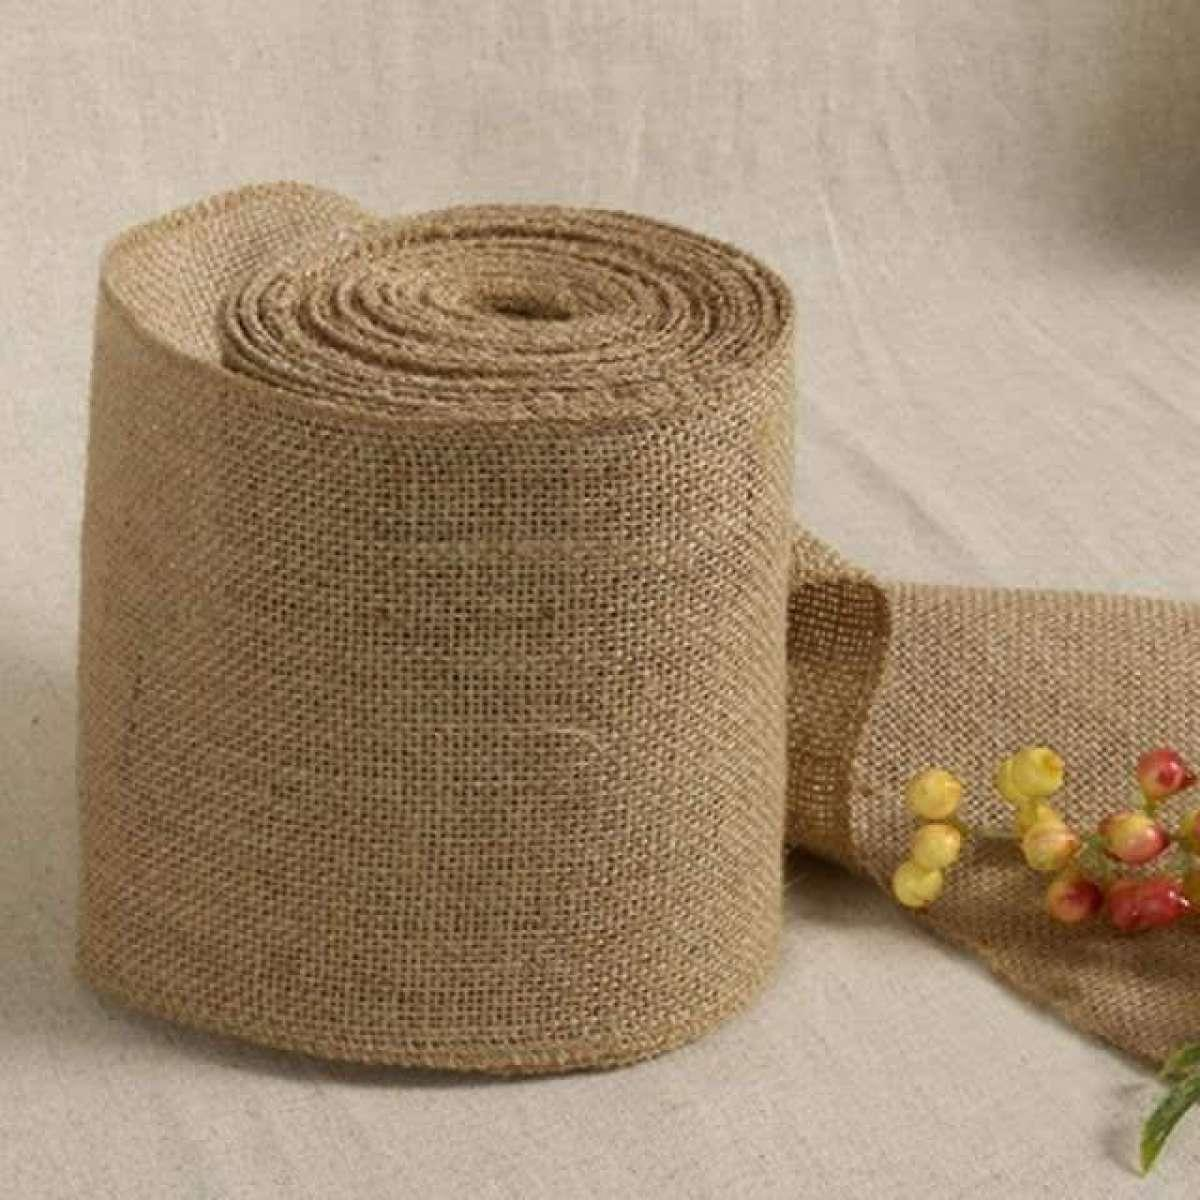 Decorative runner roll made from rough canvas 2m